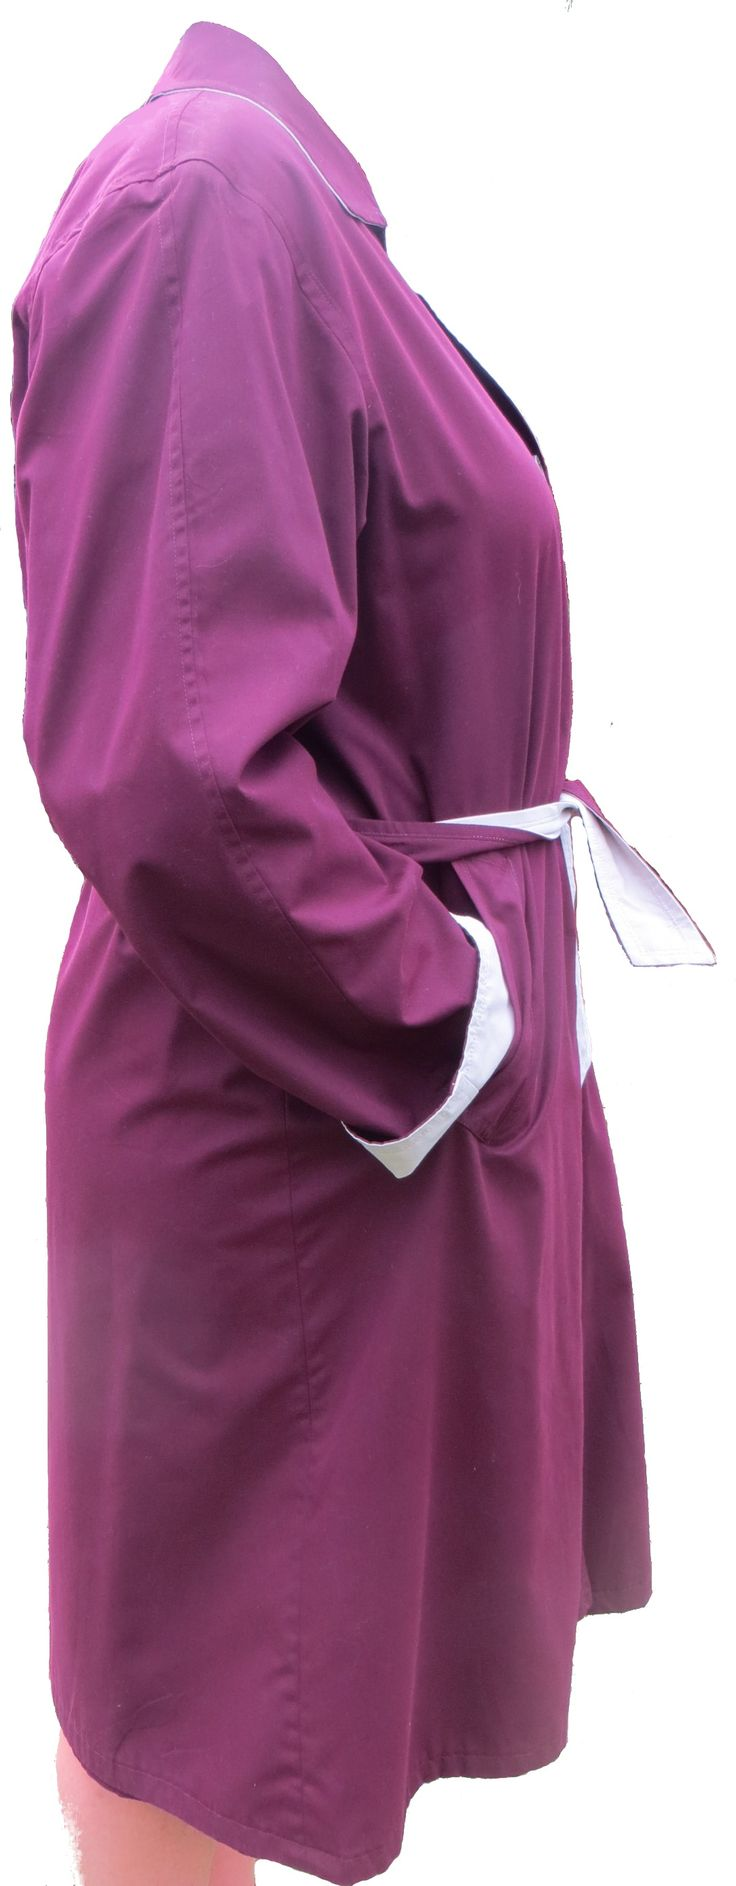 A reversible summer coat in maroon and light beige. Designed by Norma Della Legge of Italy. Hidden buttons on the beige side, two pockets both sides, a belt, soft to the touch, light but warm, excellent quality and simple finishes in poly/cotton.